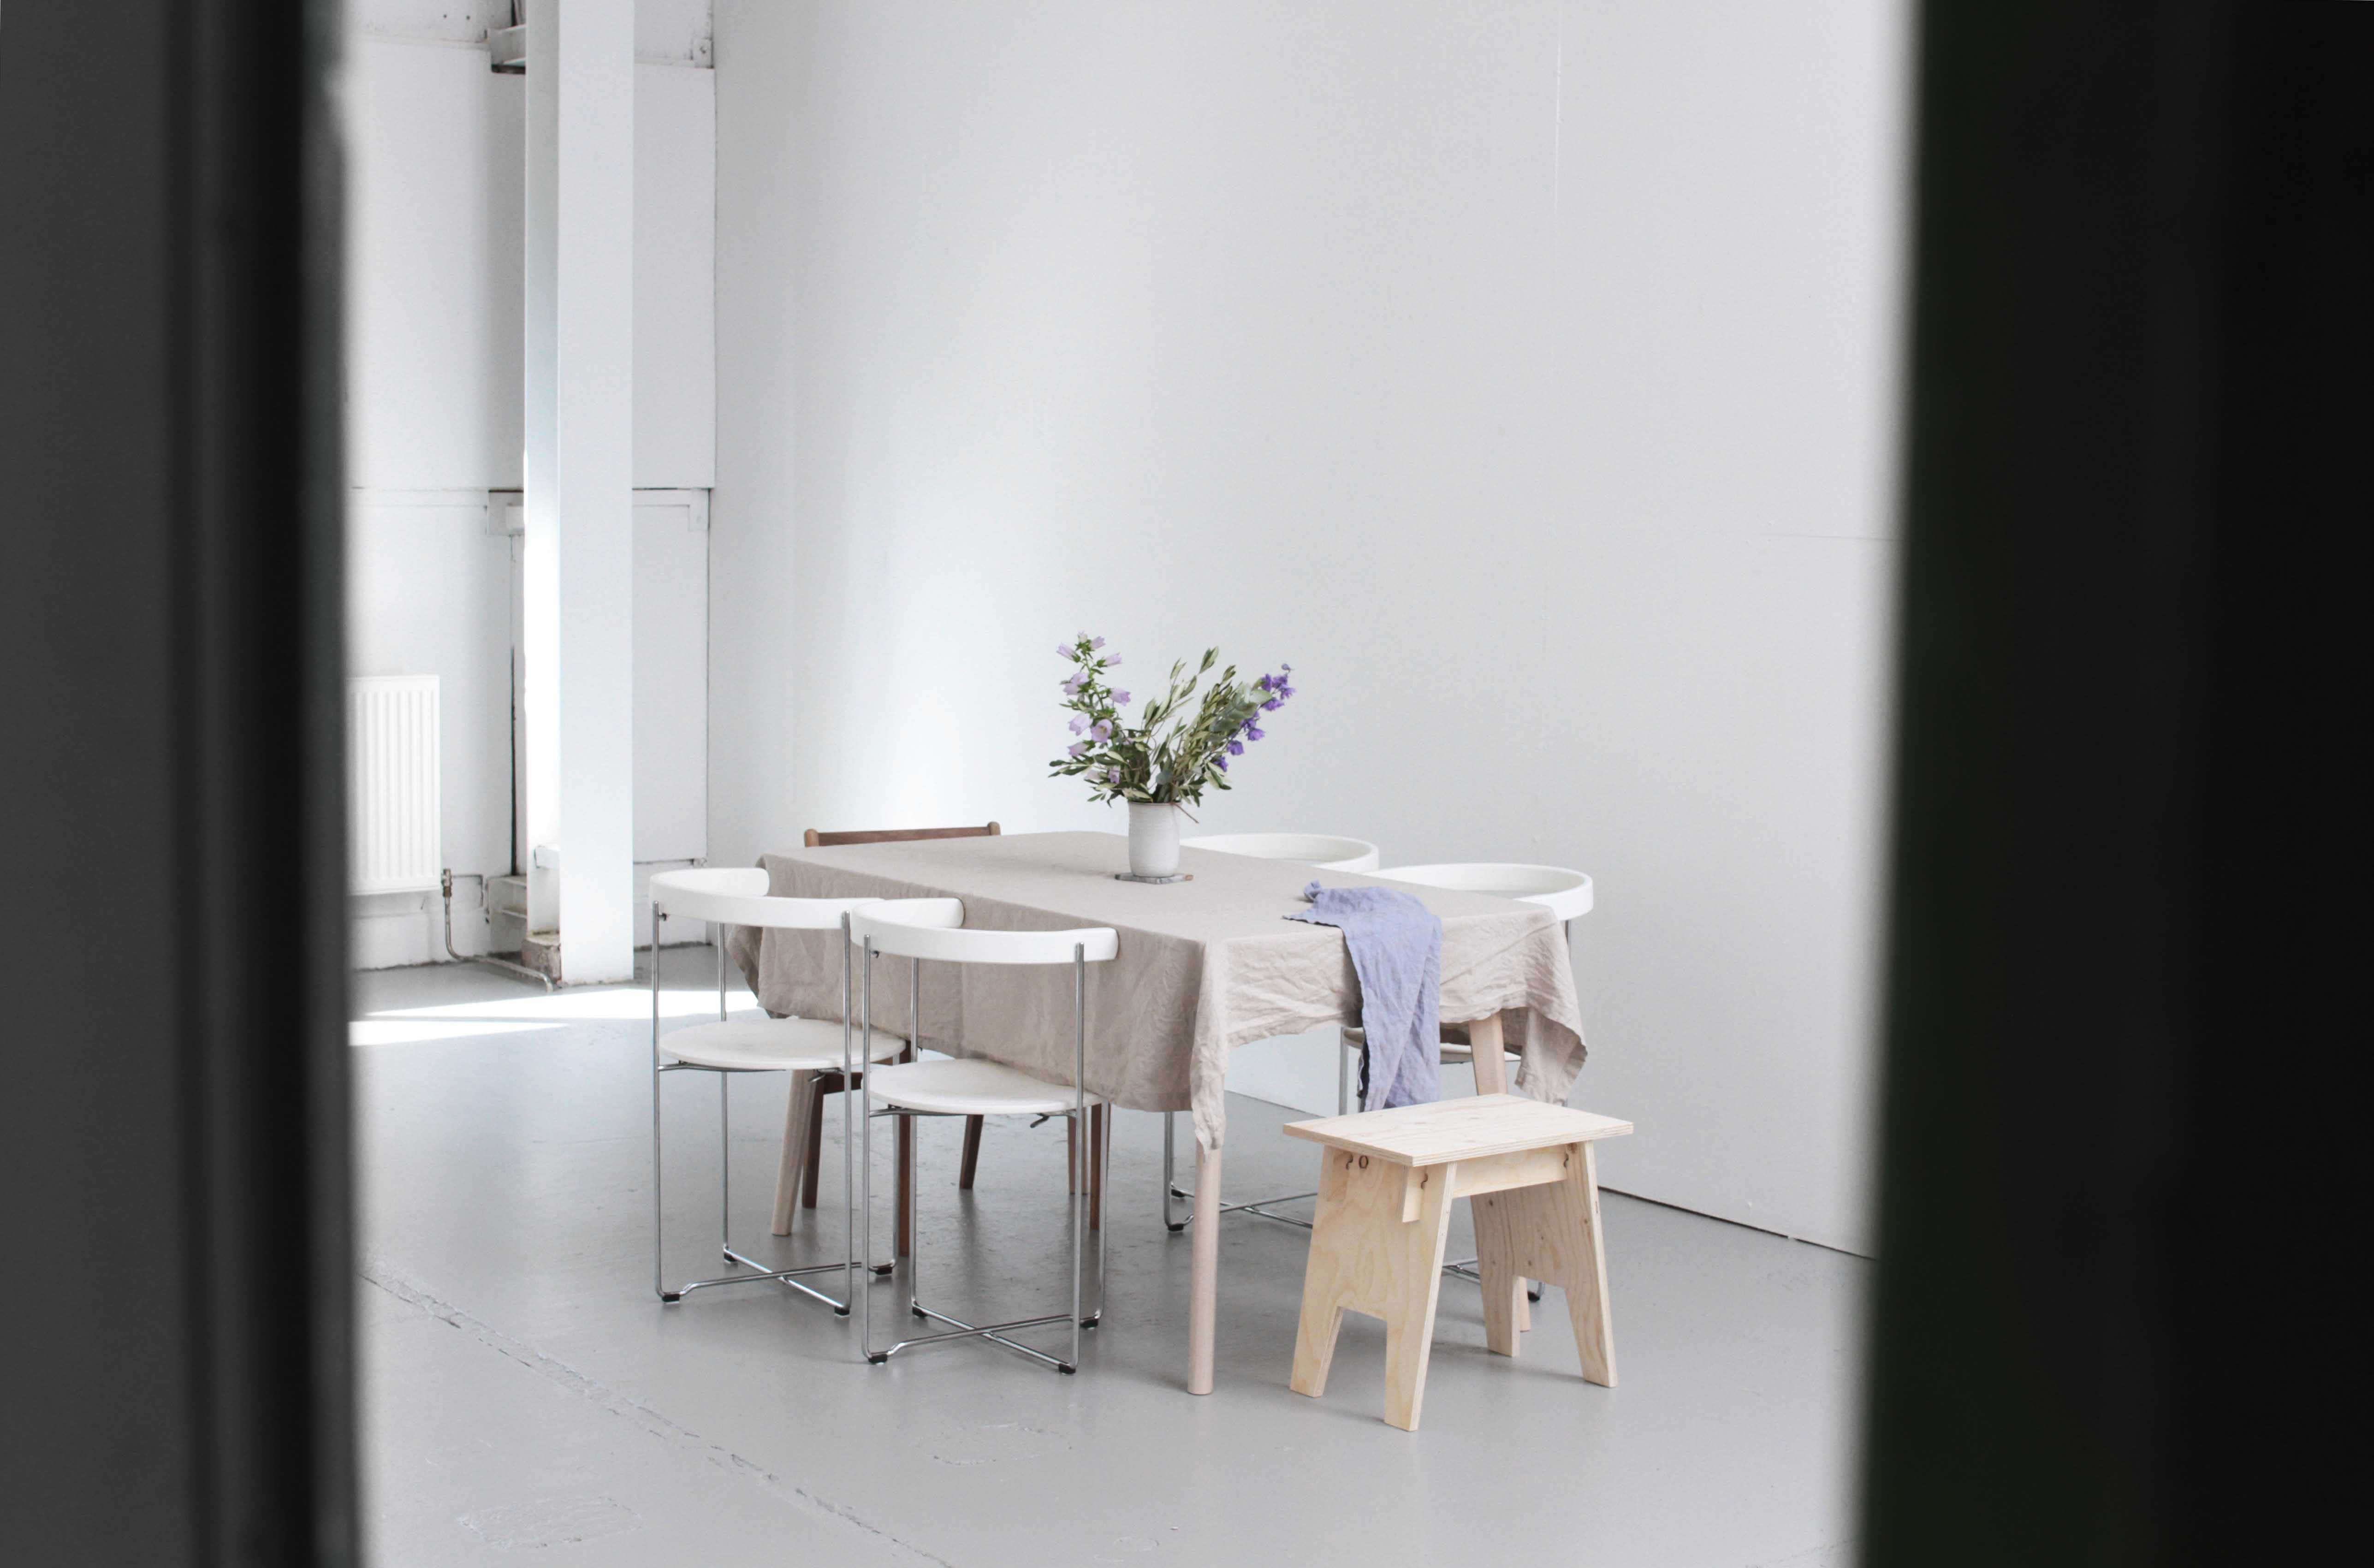 Kyra | welcome to my brand new studio for slowfood, intentional ...